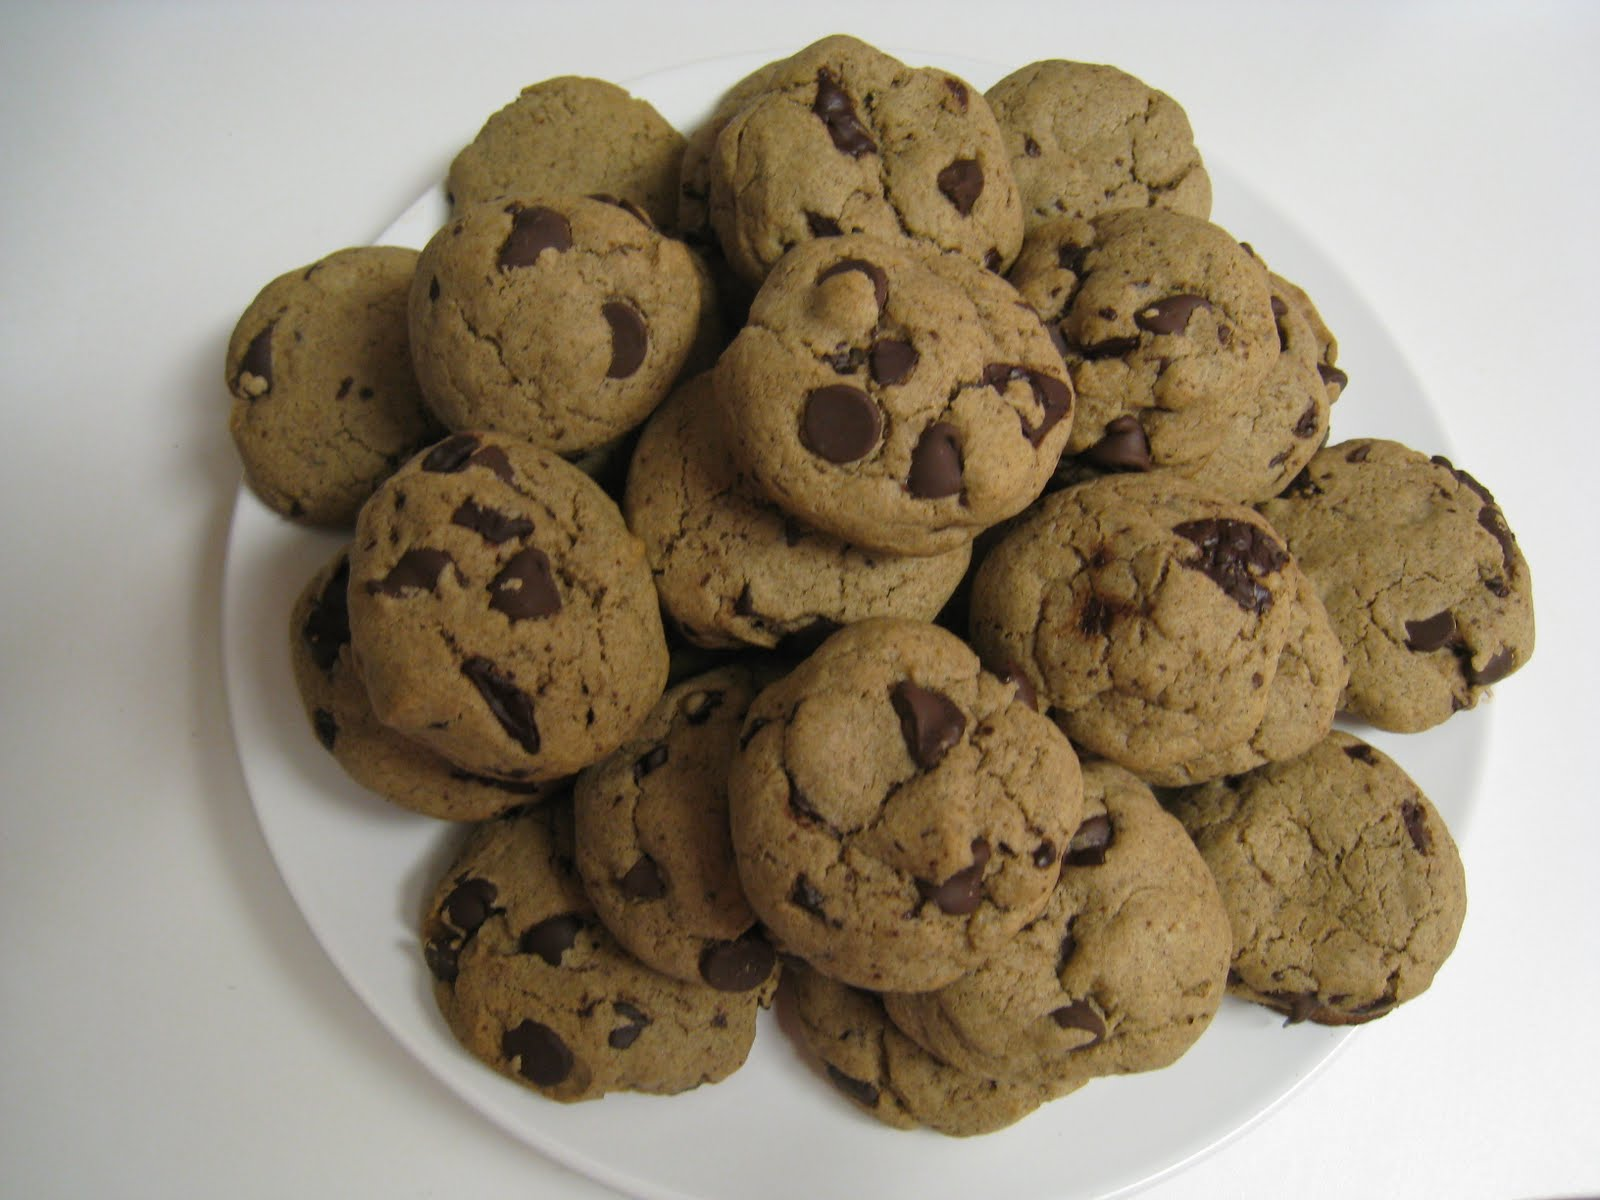 Scrapbook: Buckwheat chocolate chip cookies